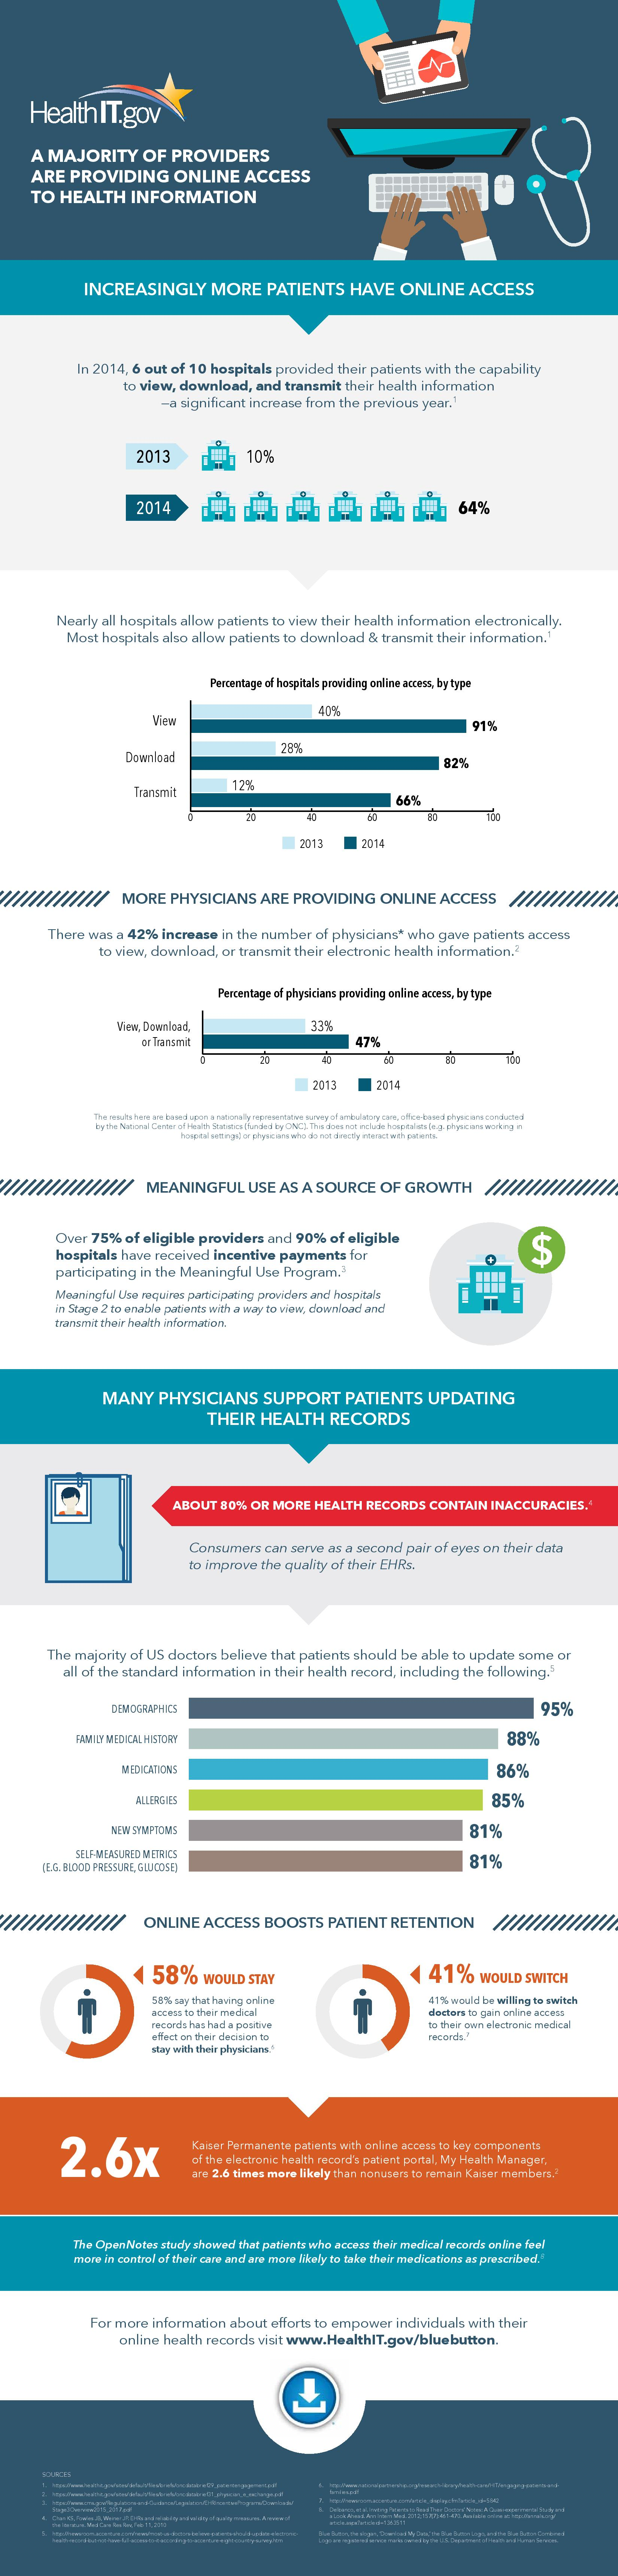 A Majority of Providers Provide Online Access to Health